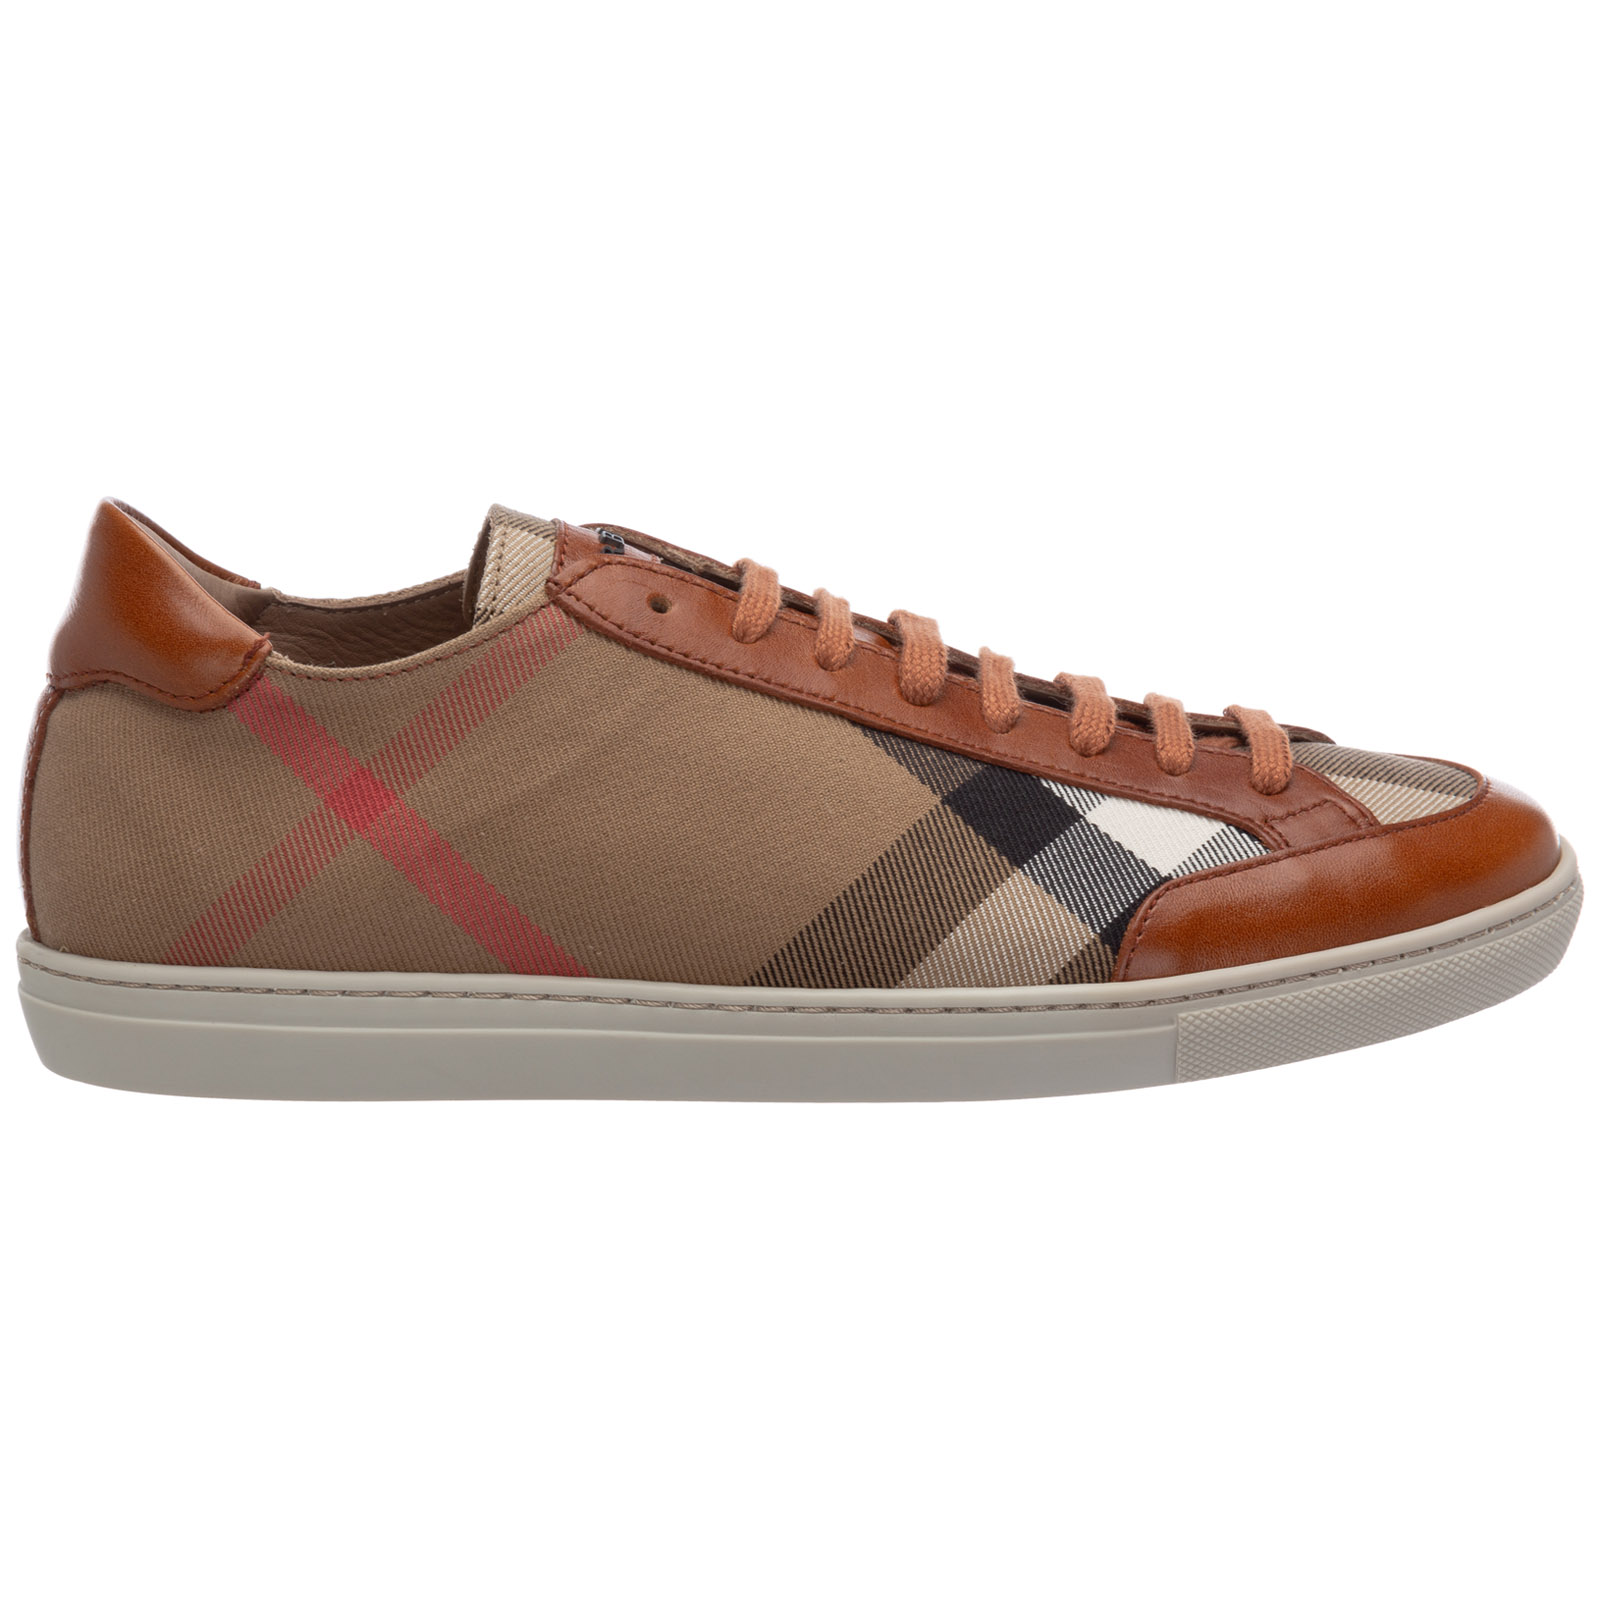 BURBERRY WOMEN'S SHOES TRAINERS SNEAKERS  HARTFIELDS